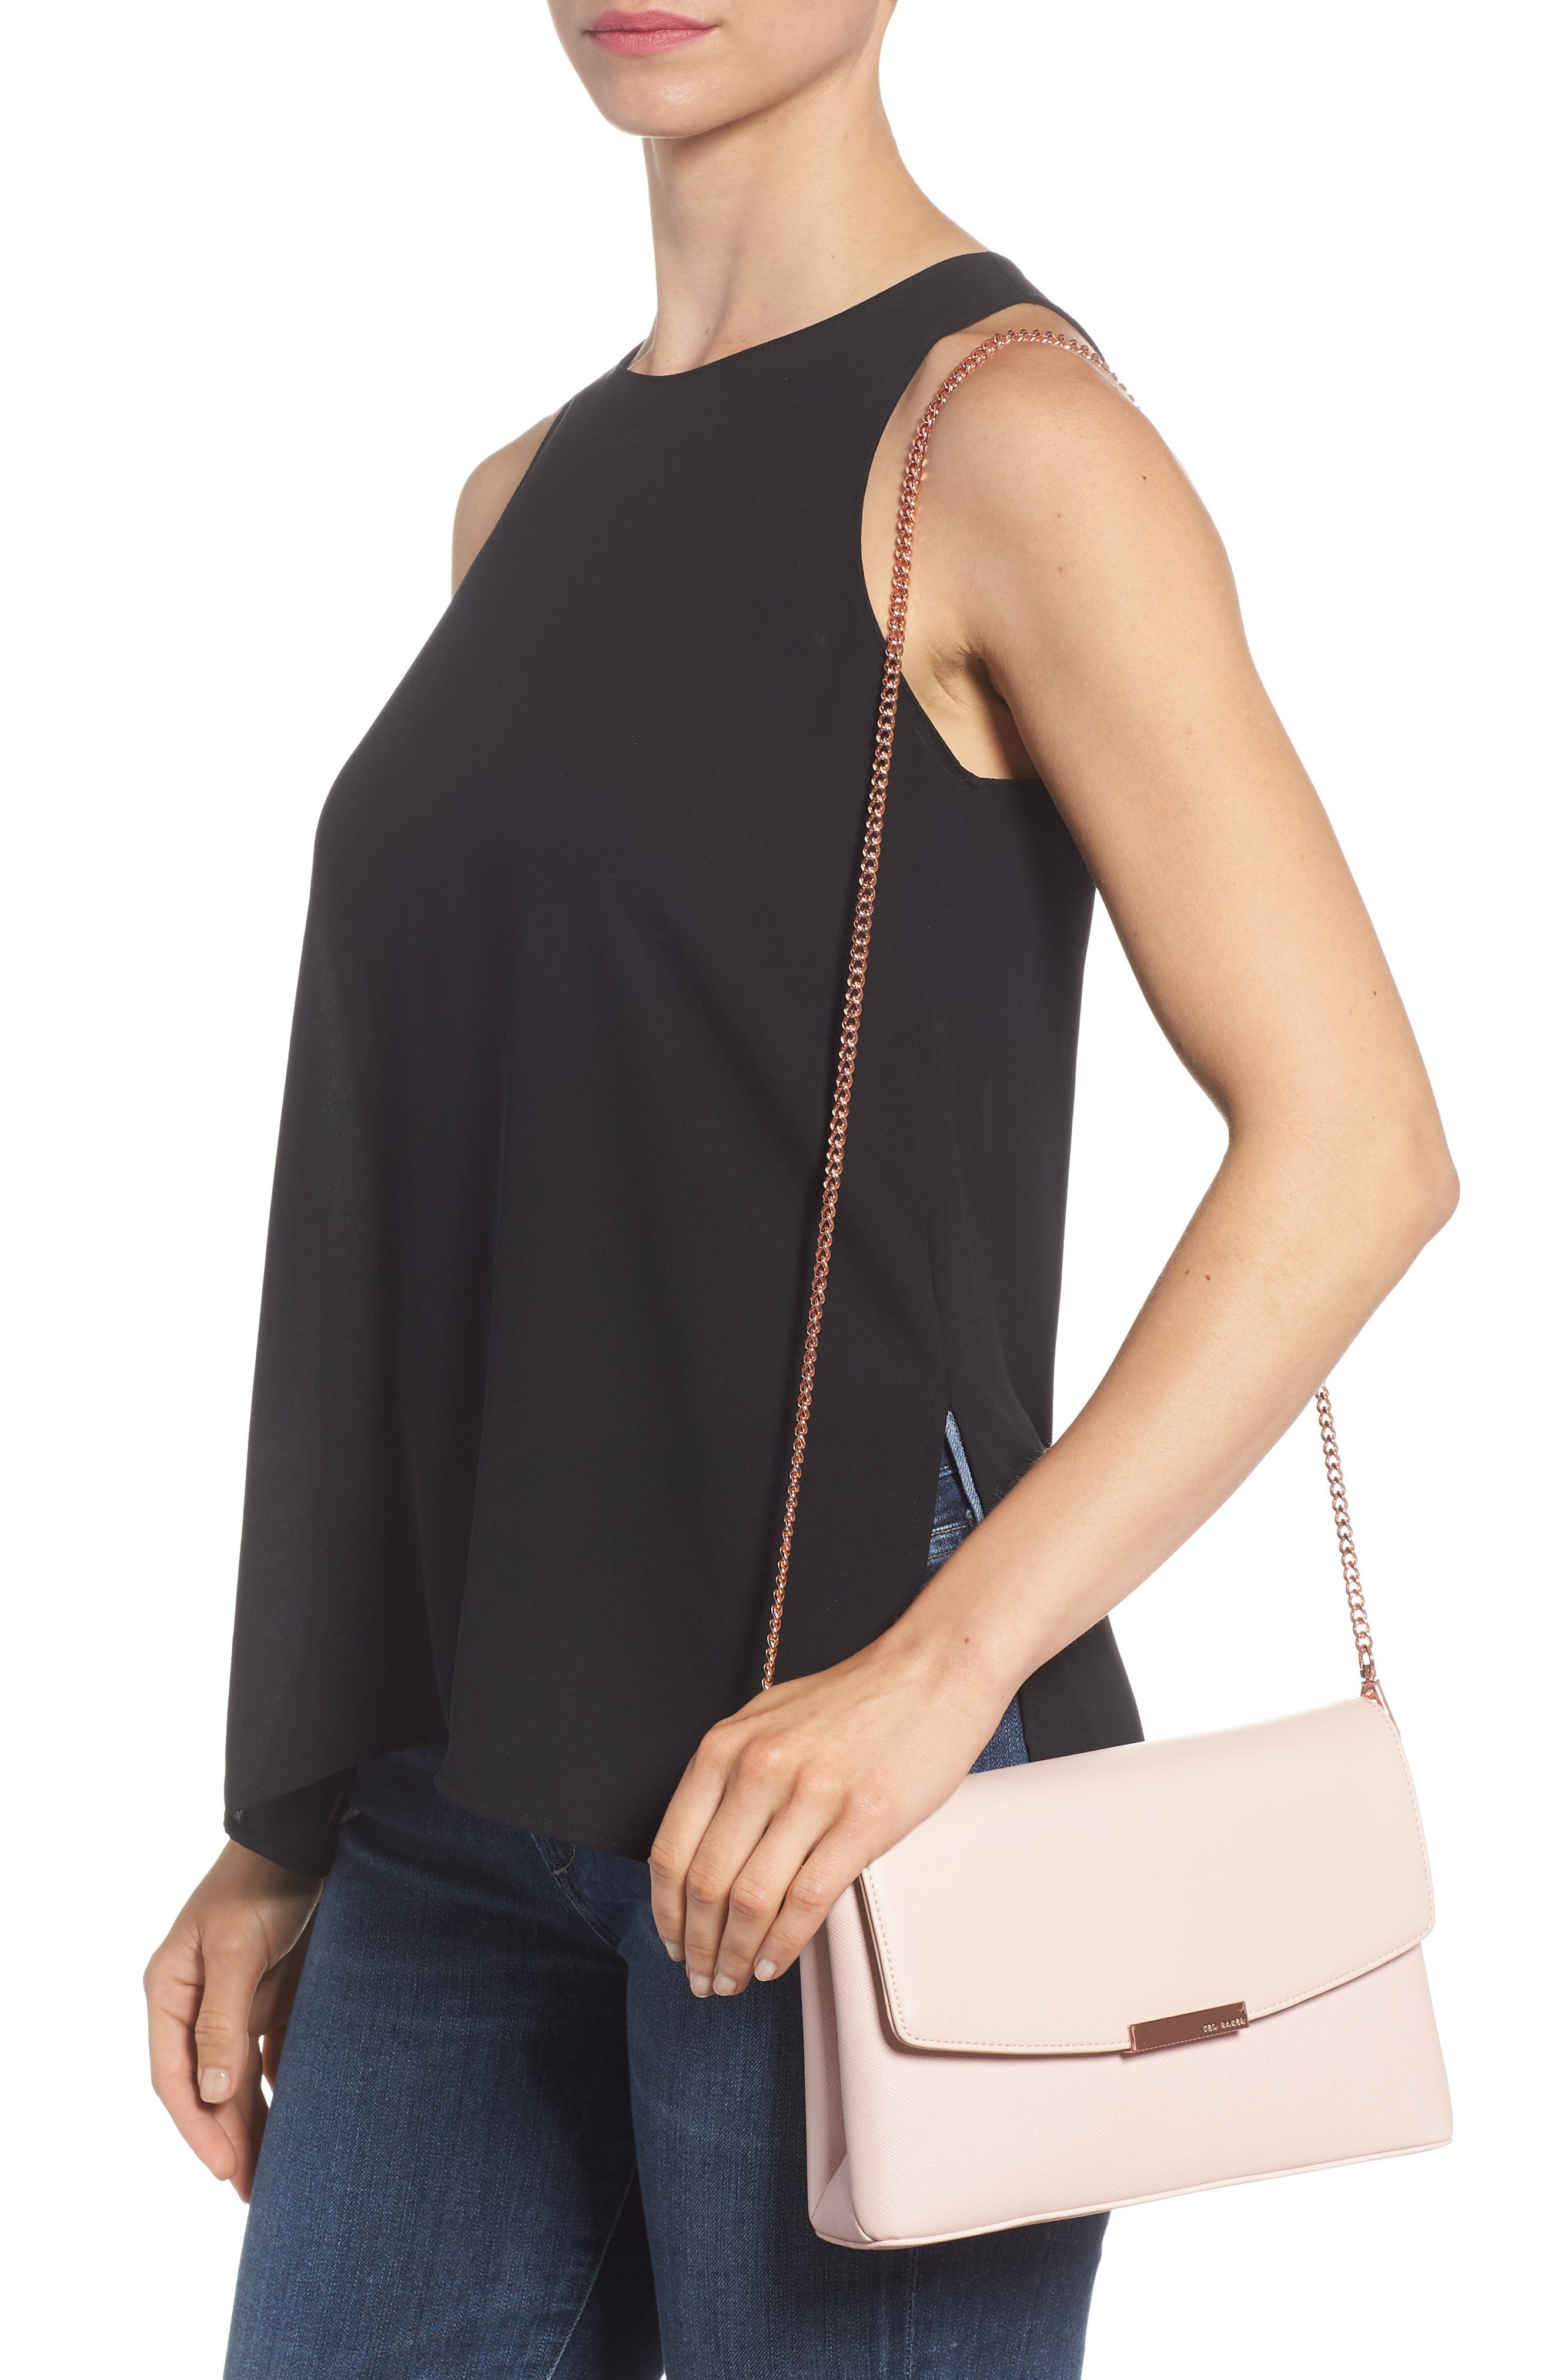 Faux Leather Crossbody Bag,                             Alternate thumbnail 2, color,                             Nude Pink